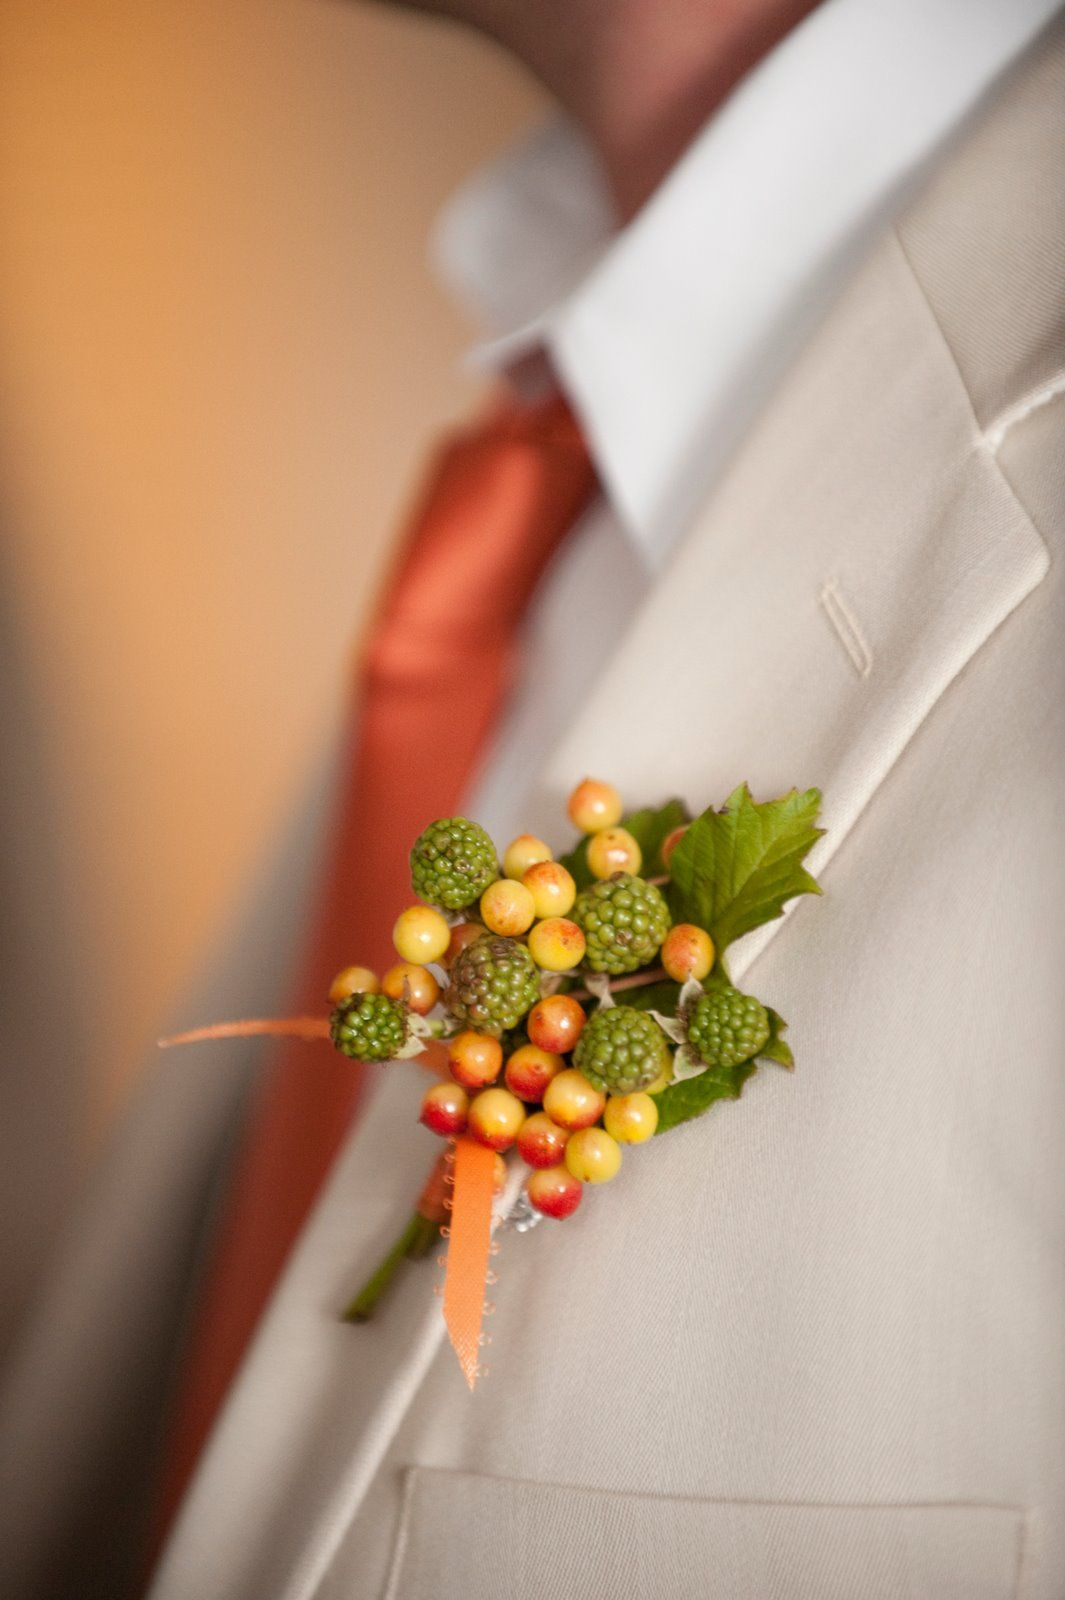 raspberries and ilex combine for a wonderful boutonniere. Black Bedroom Furniture Sets. Home Design Ideas